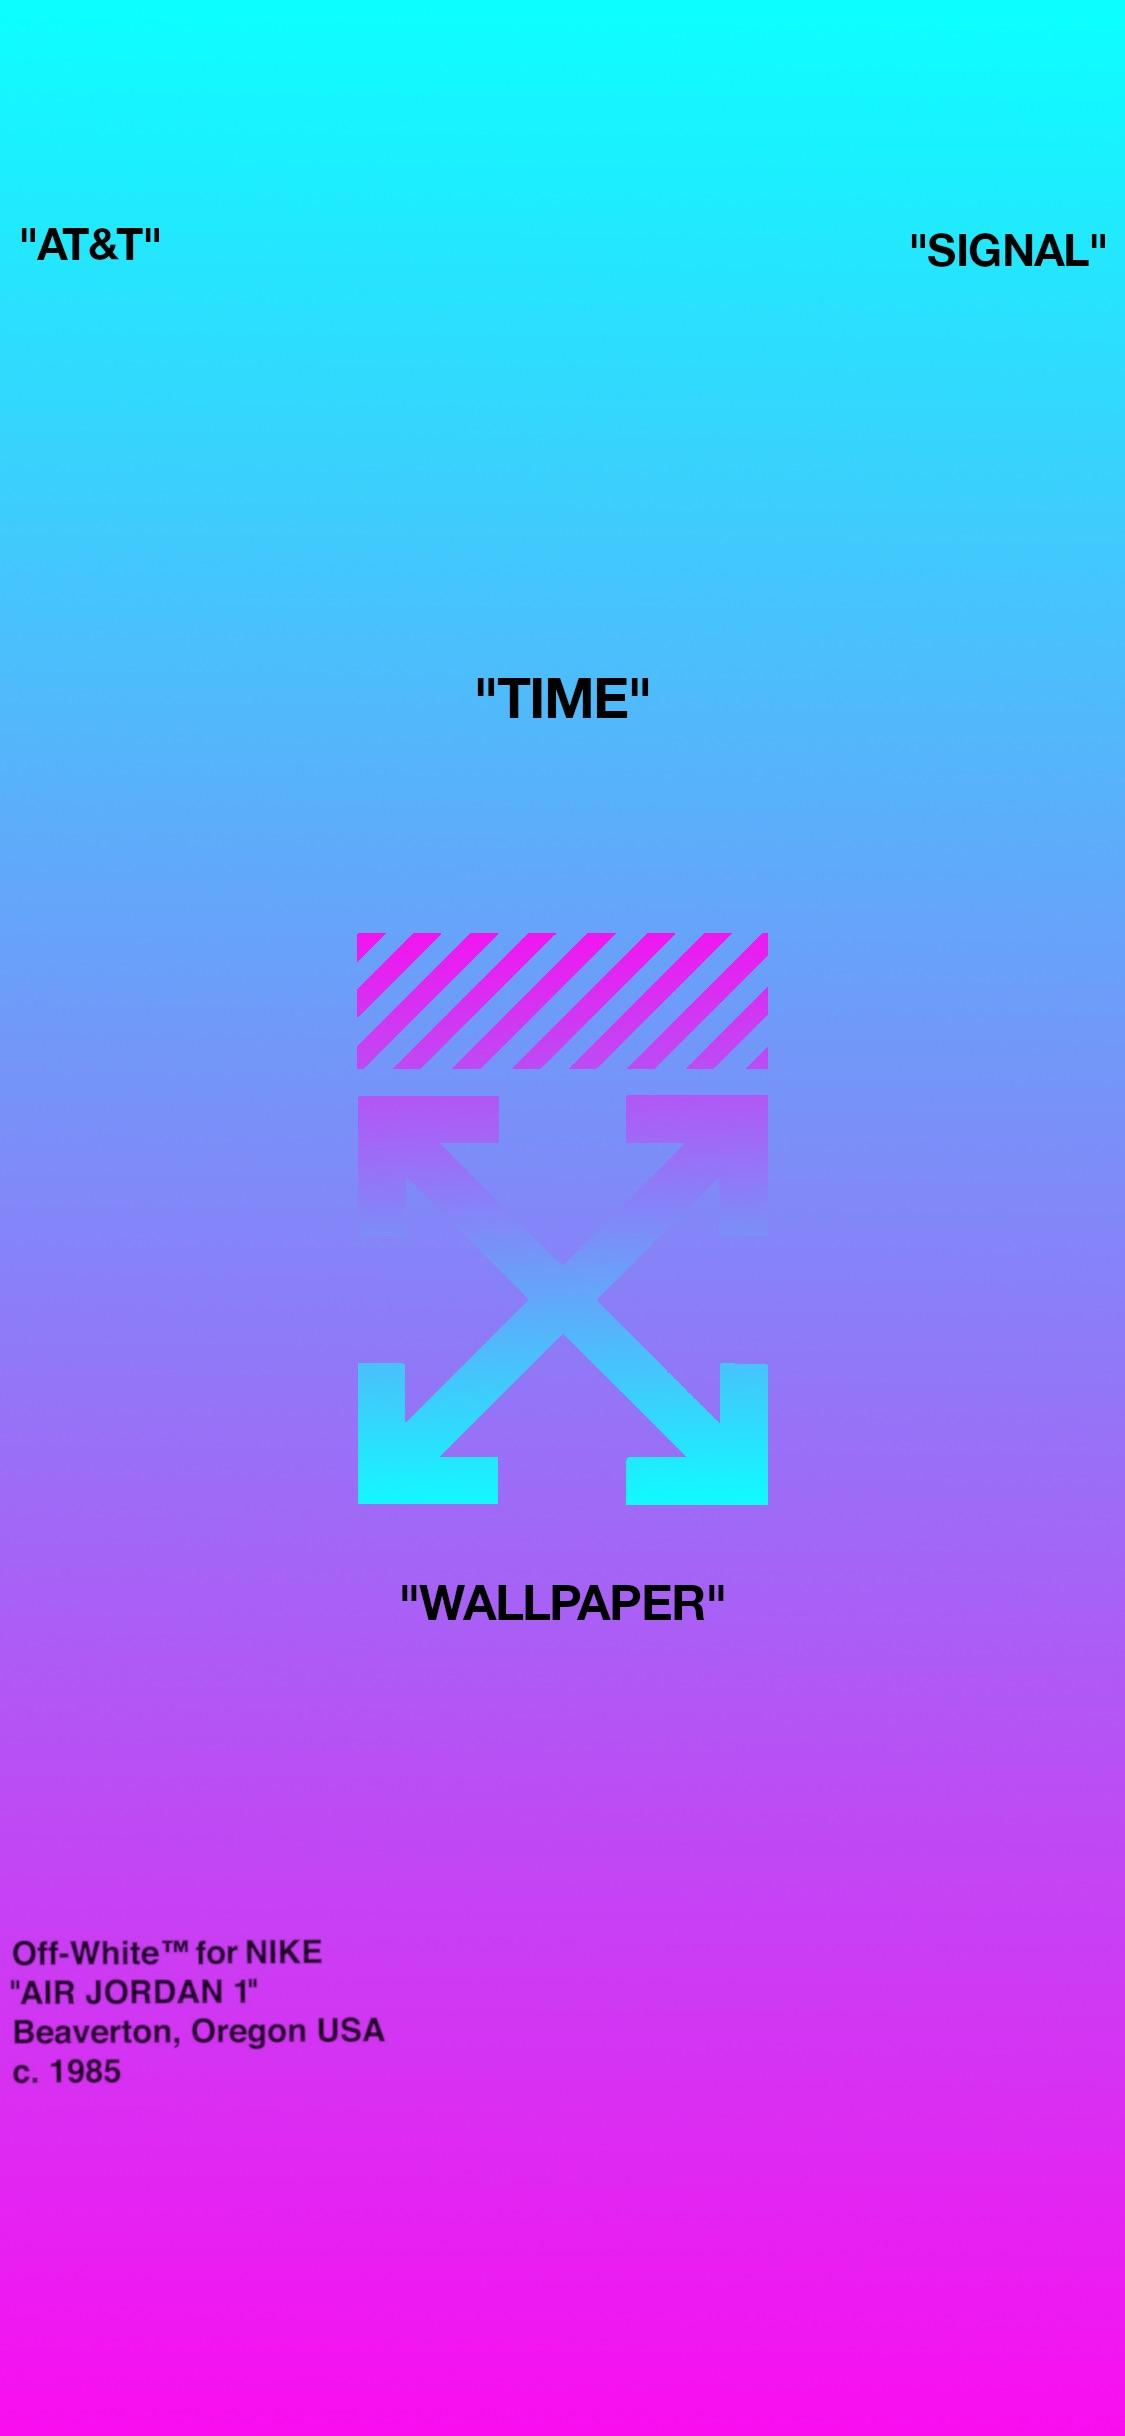 Off White Wallpaper Posted By John Anderson